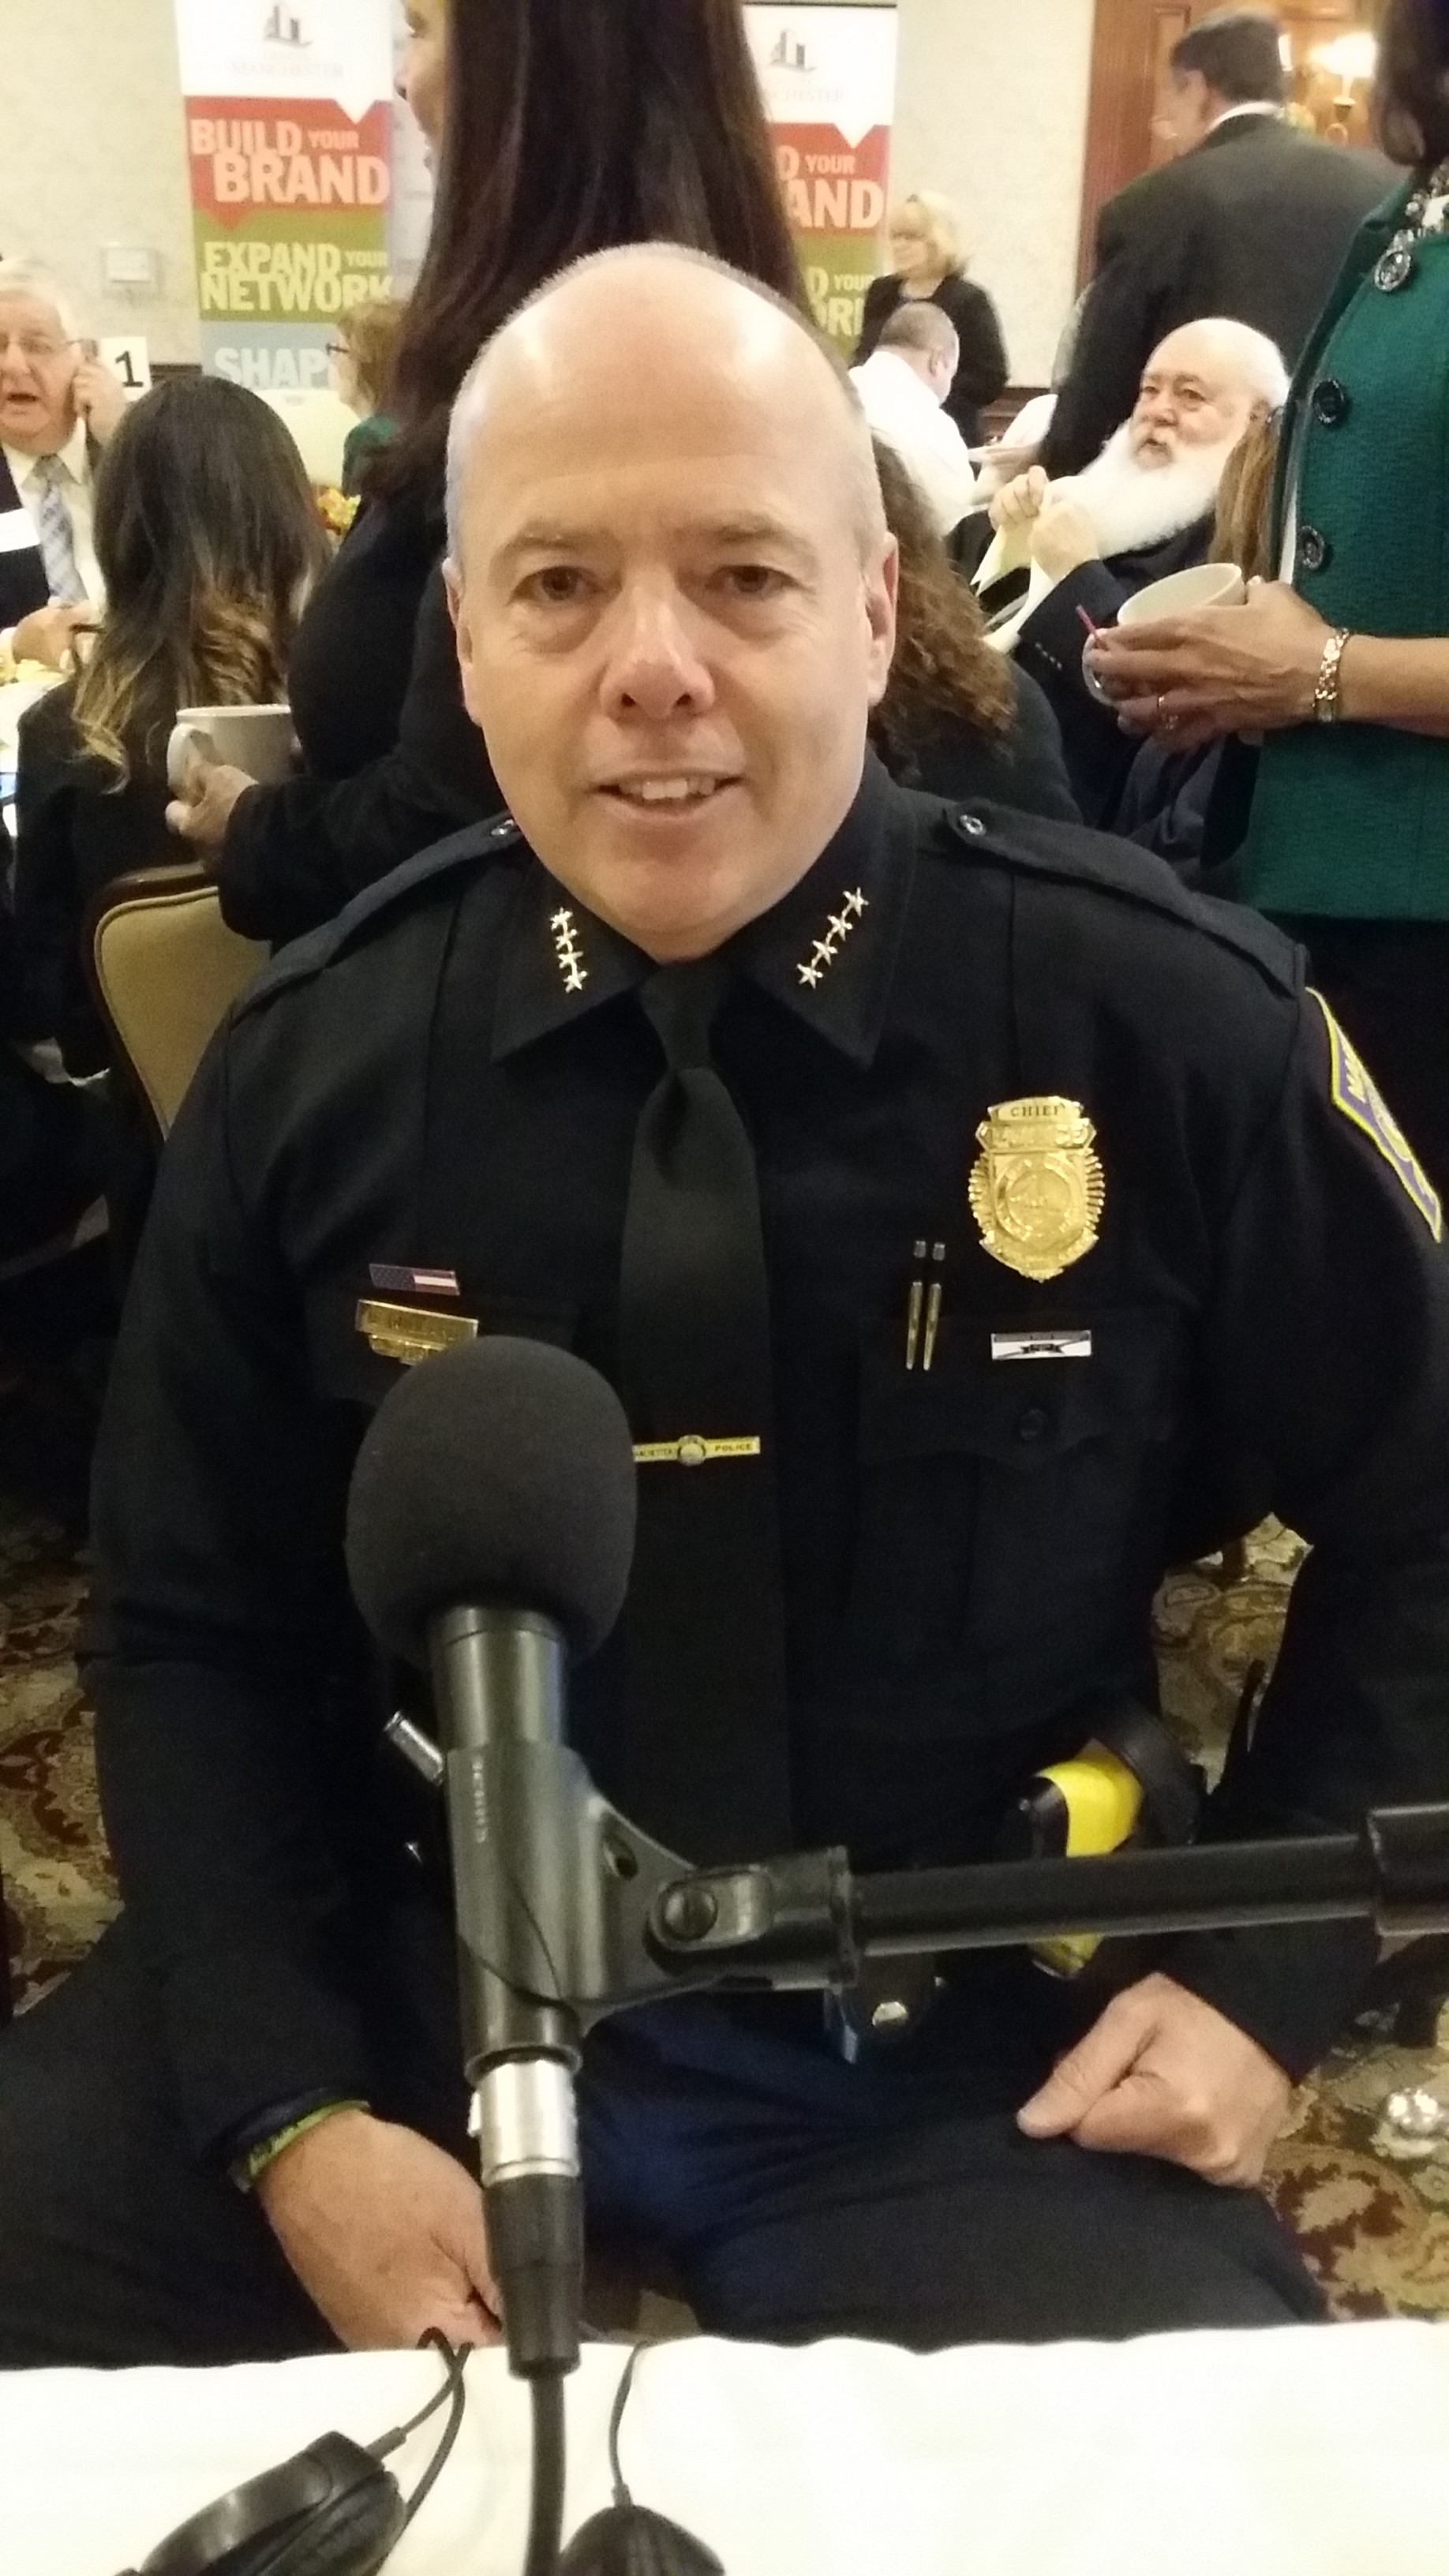 Police Chief Willard and Attorney General Foster's Immigration Ban Criticisms